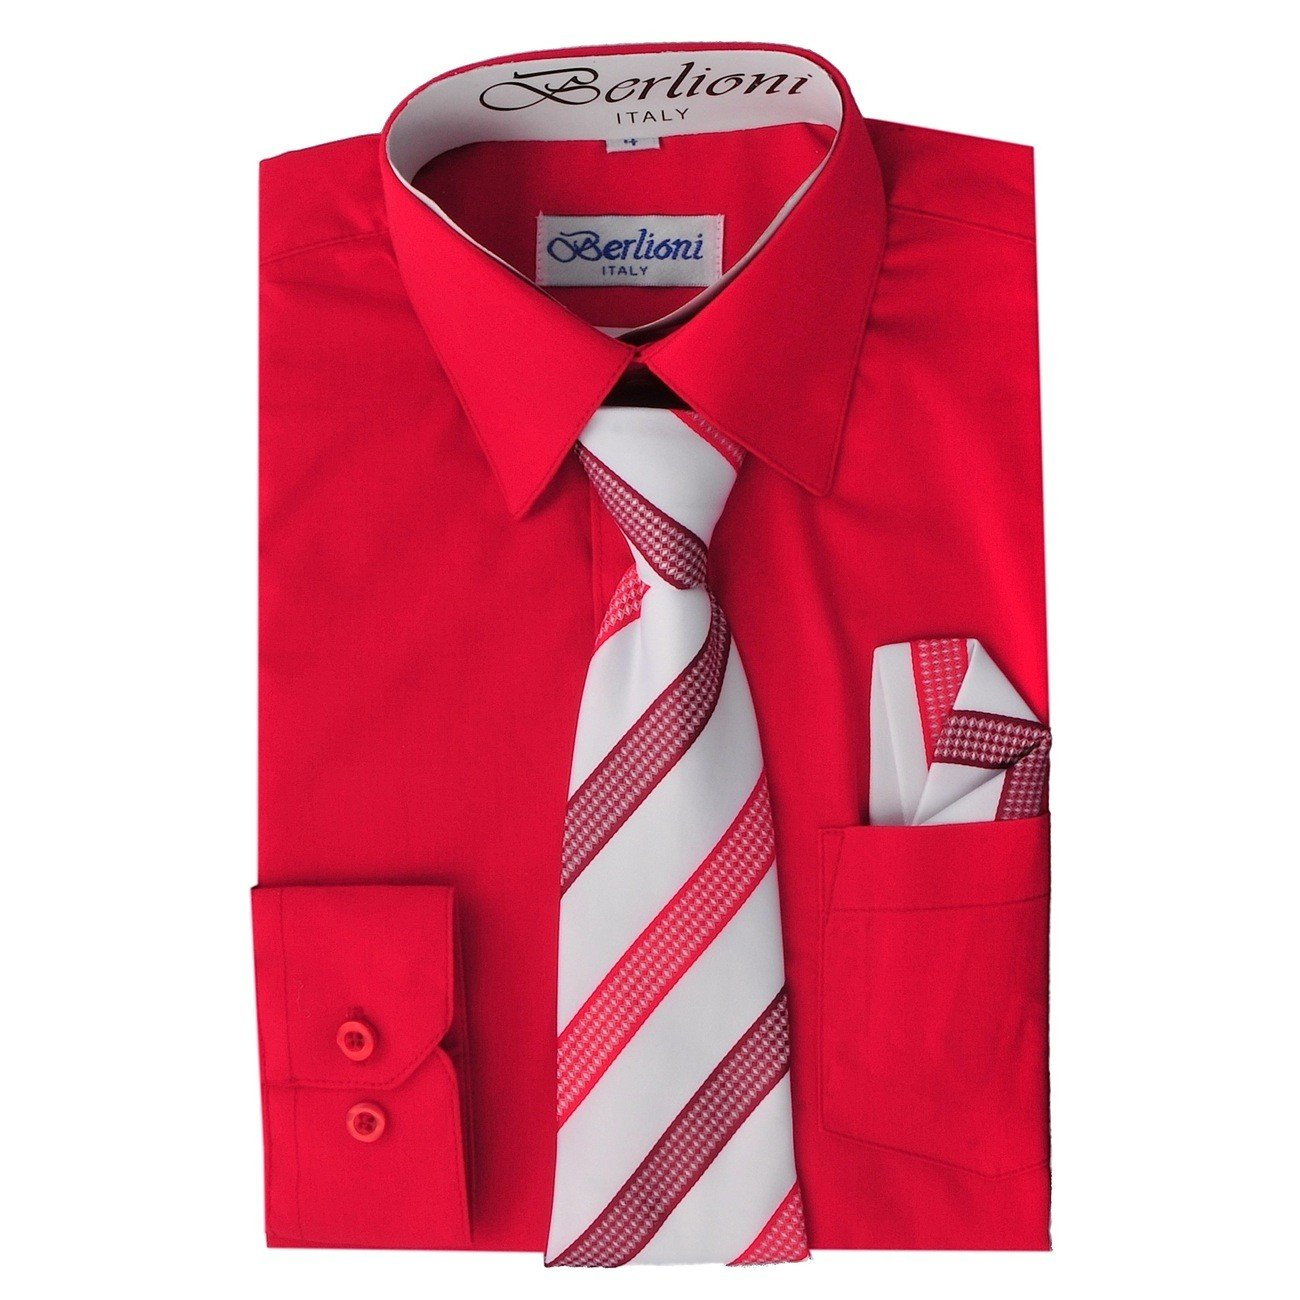 Boy's Dress Shirt, Necktie, and Hanky Set - Red, Size 6 Boy's Dress Shirt N-708